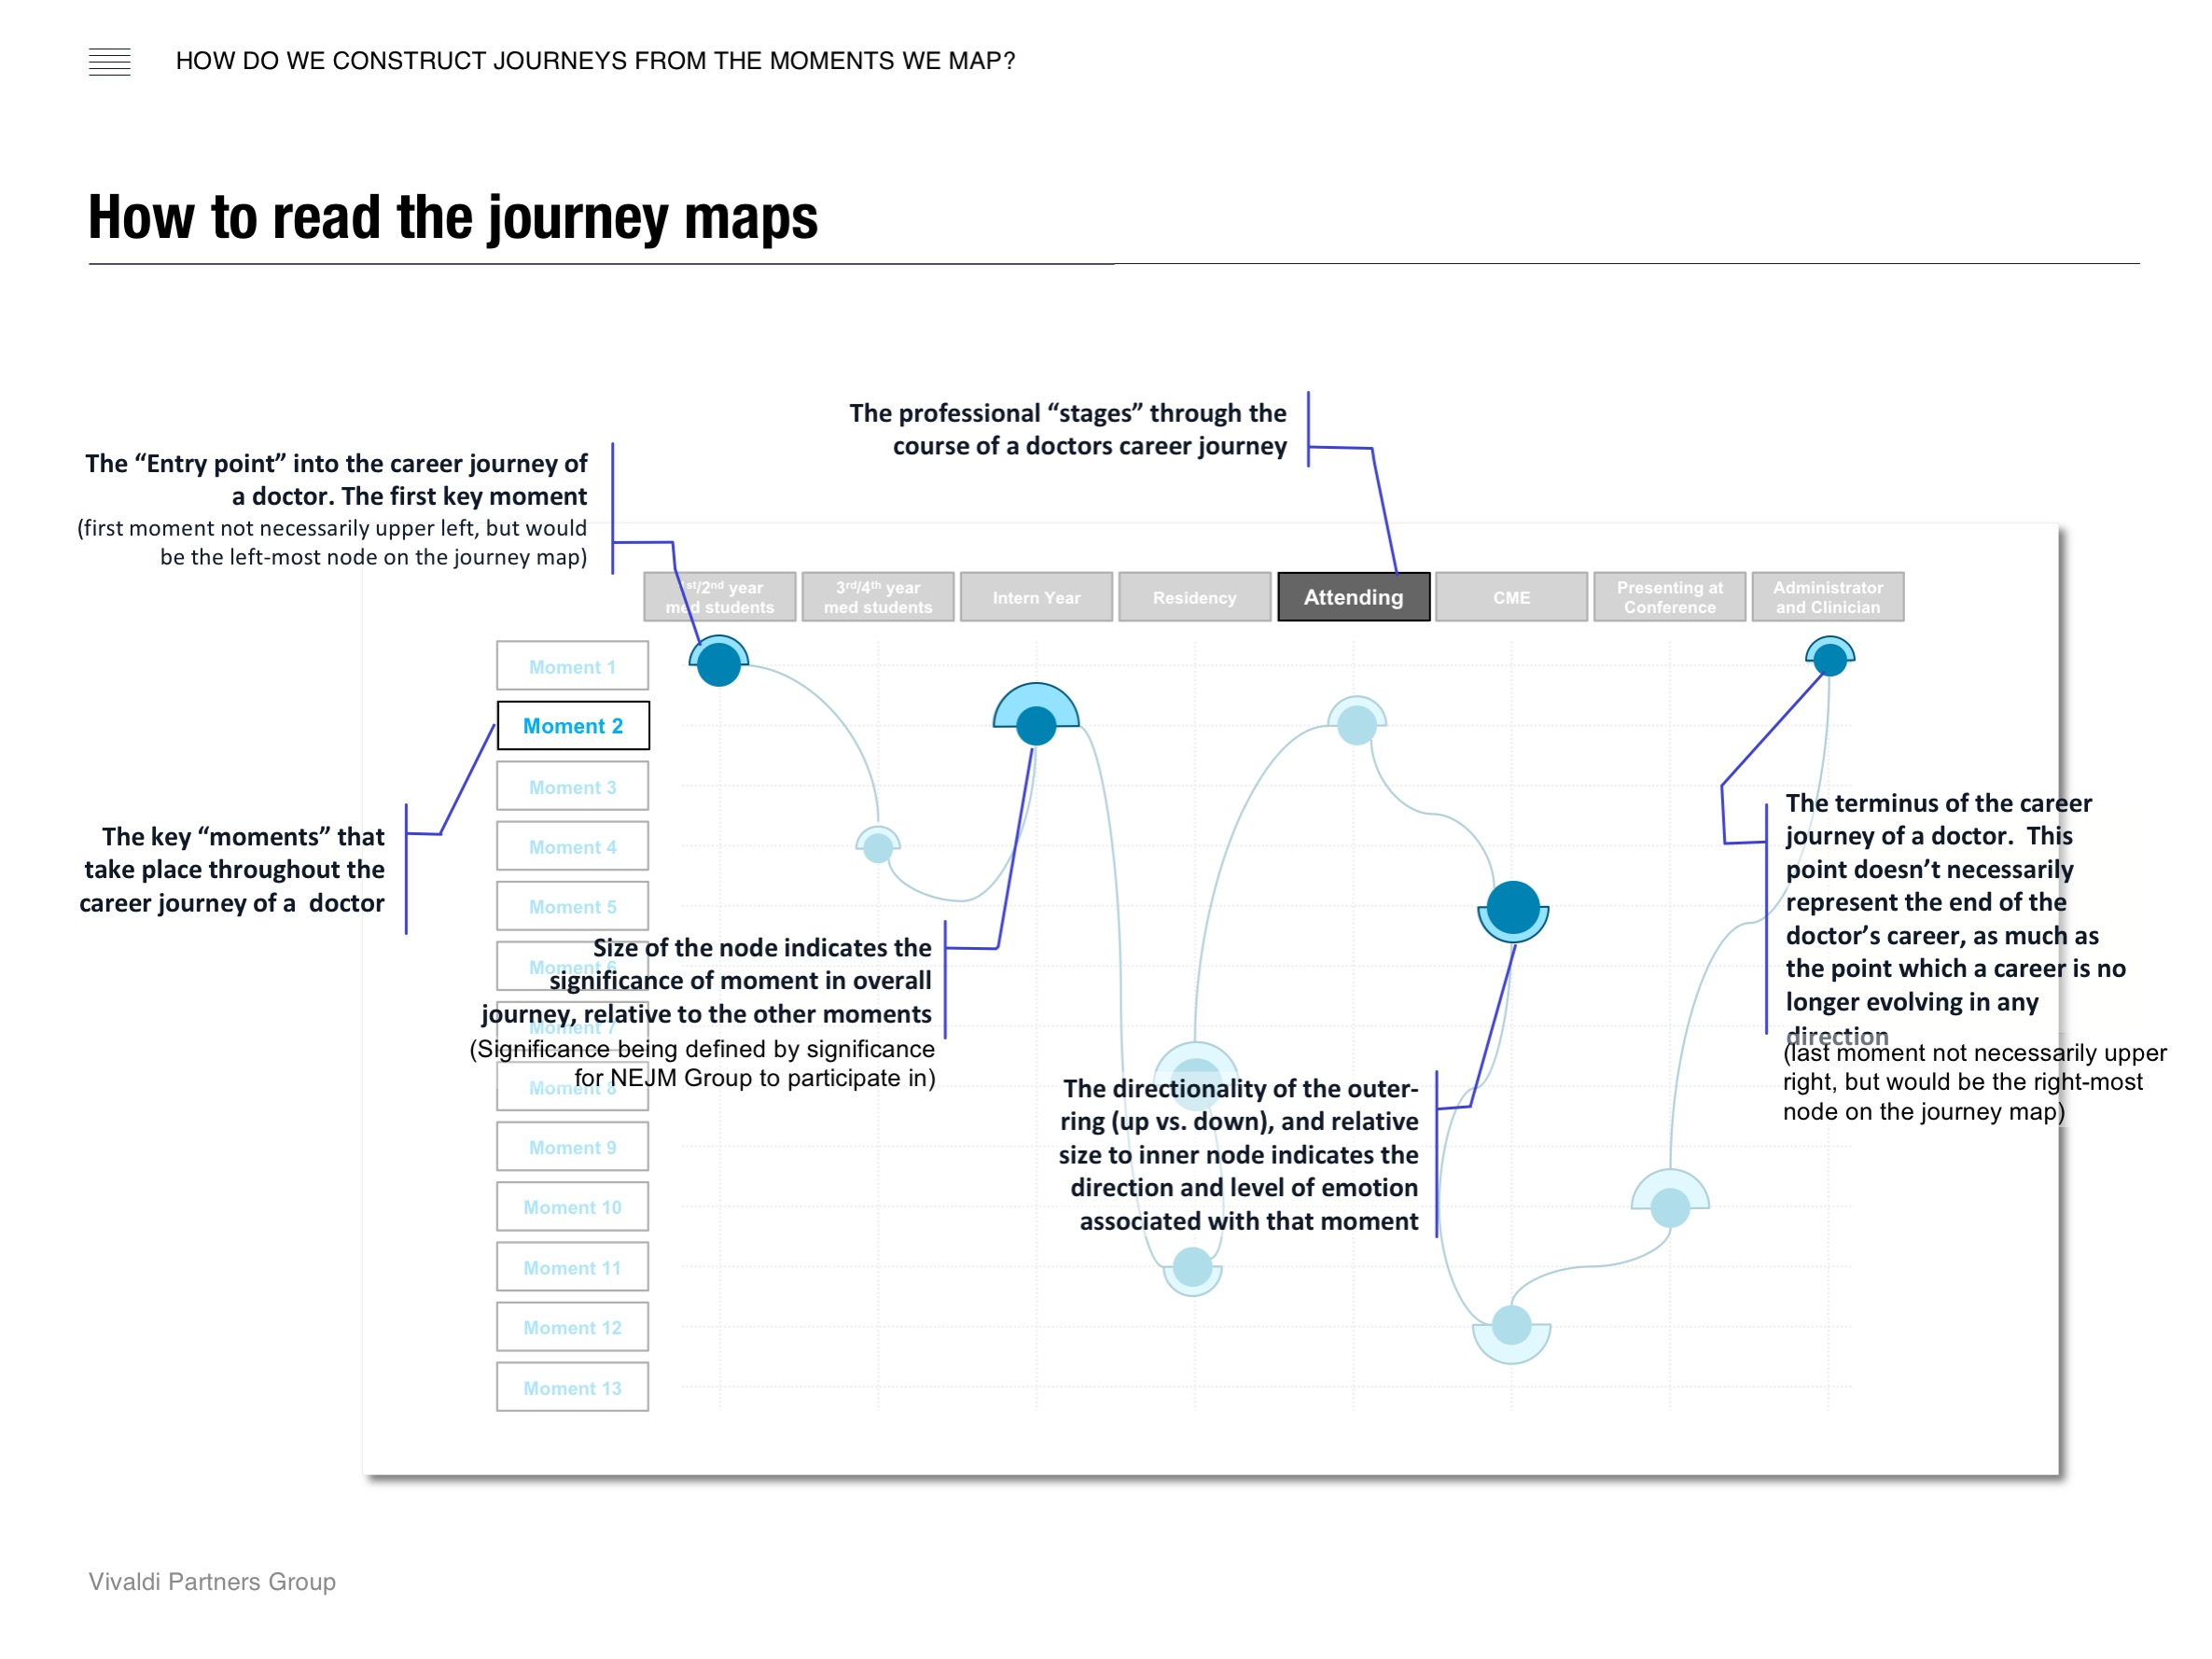 How to read the journey maps